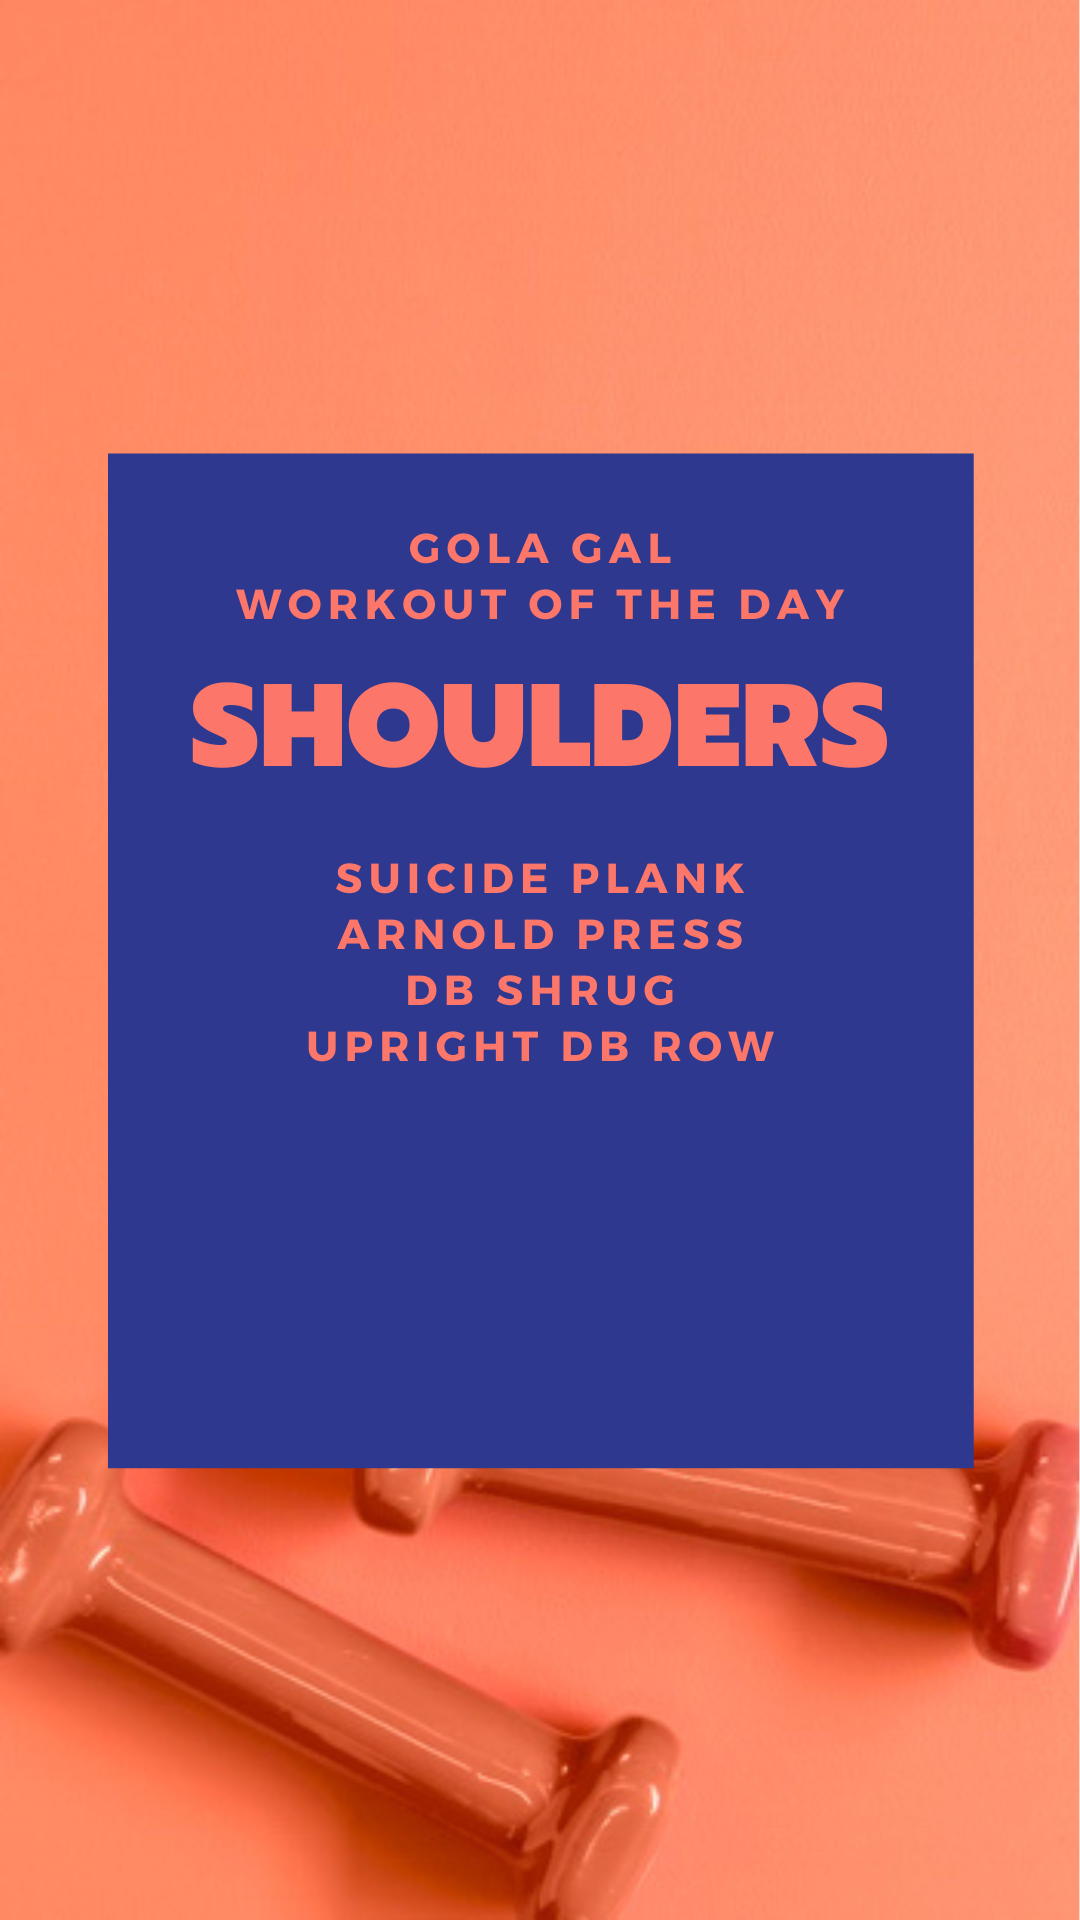 Great shoulder workout for your next gym session. #shoulderworkout #fitness #workoutroutine